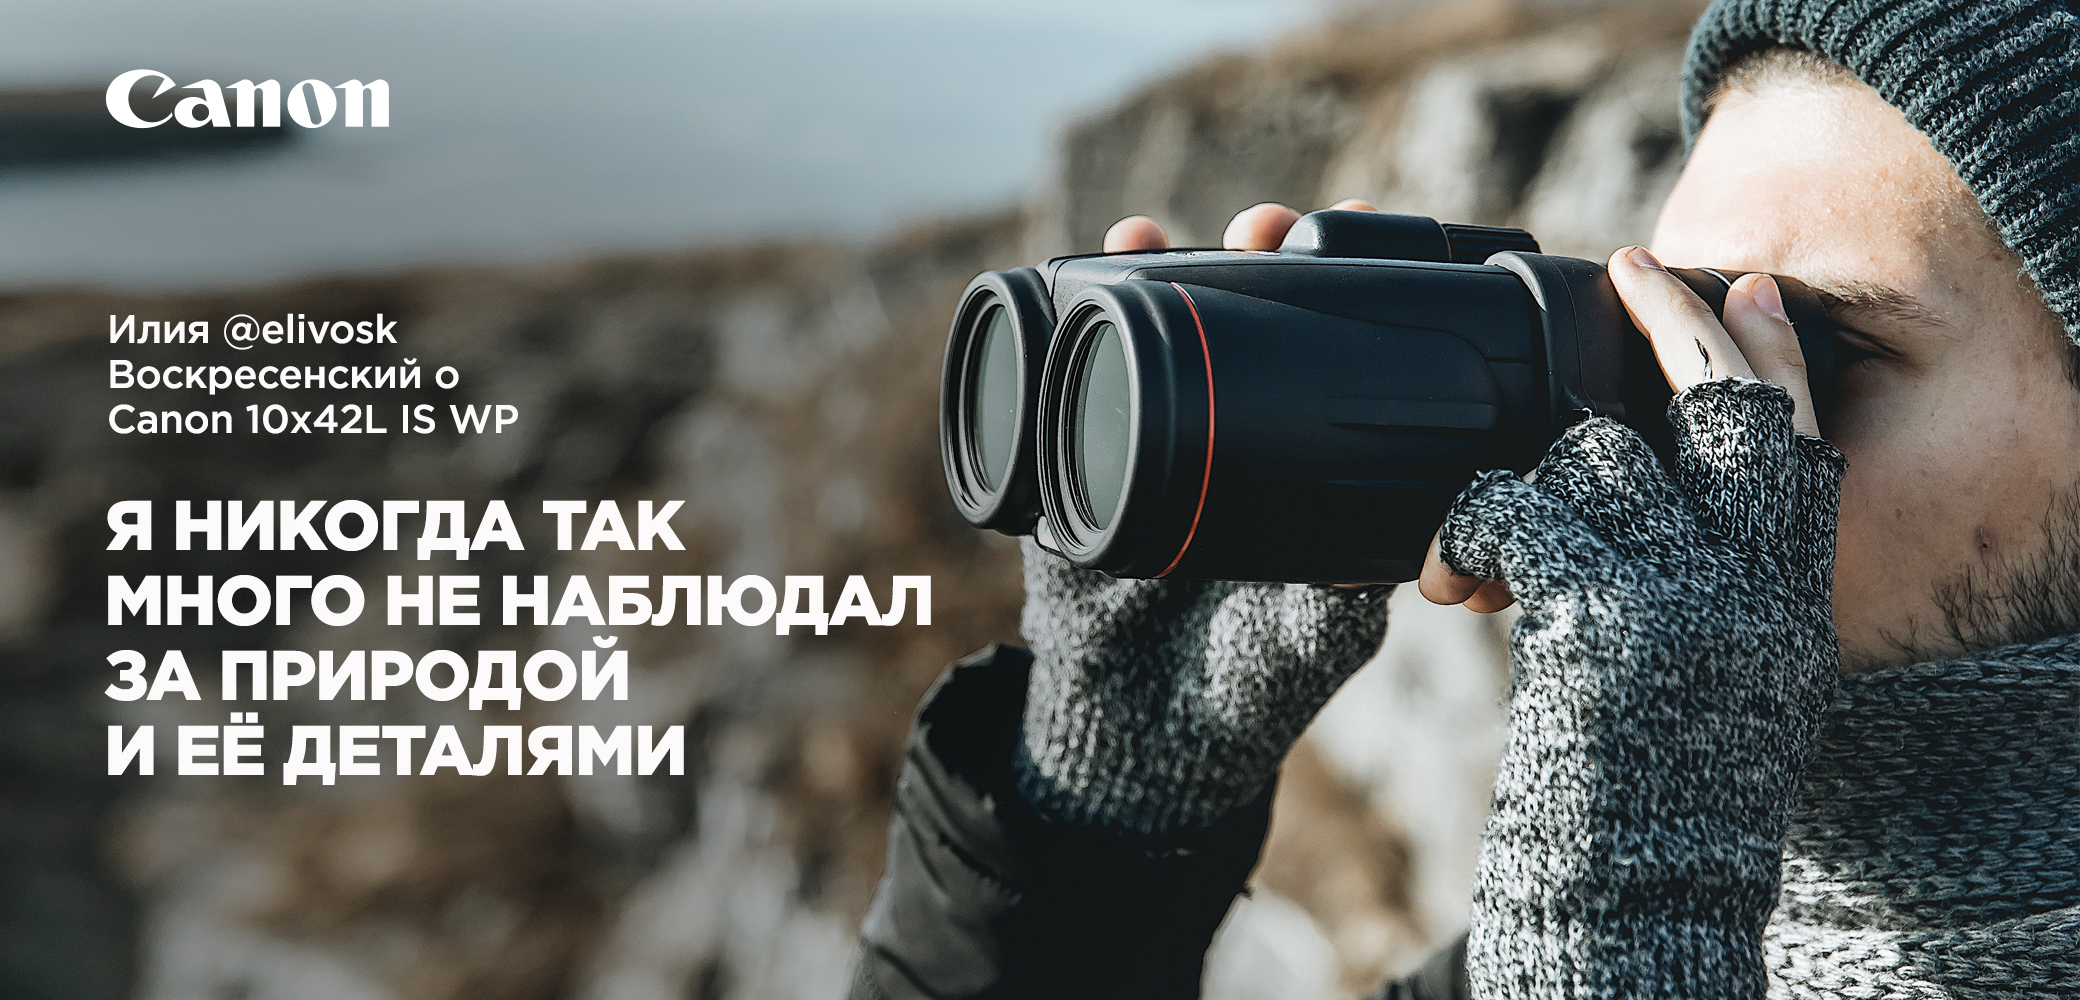 Объектив Canon 10x42L IS WP